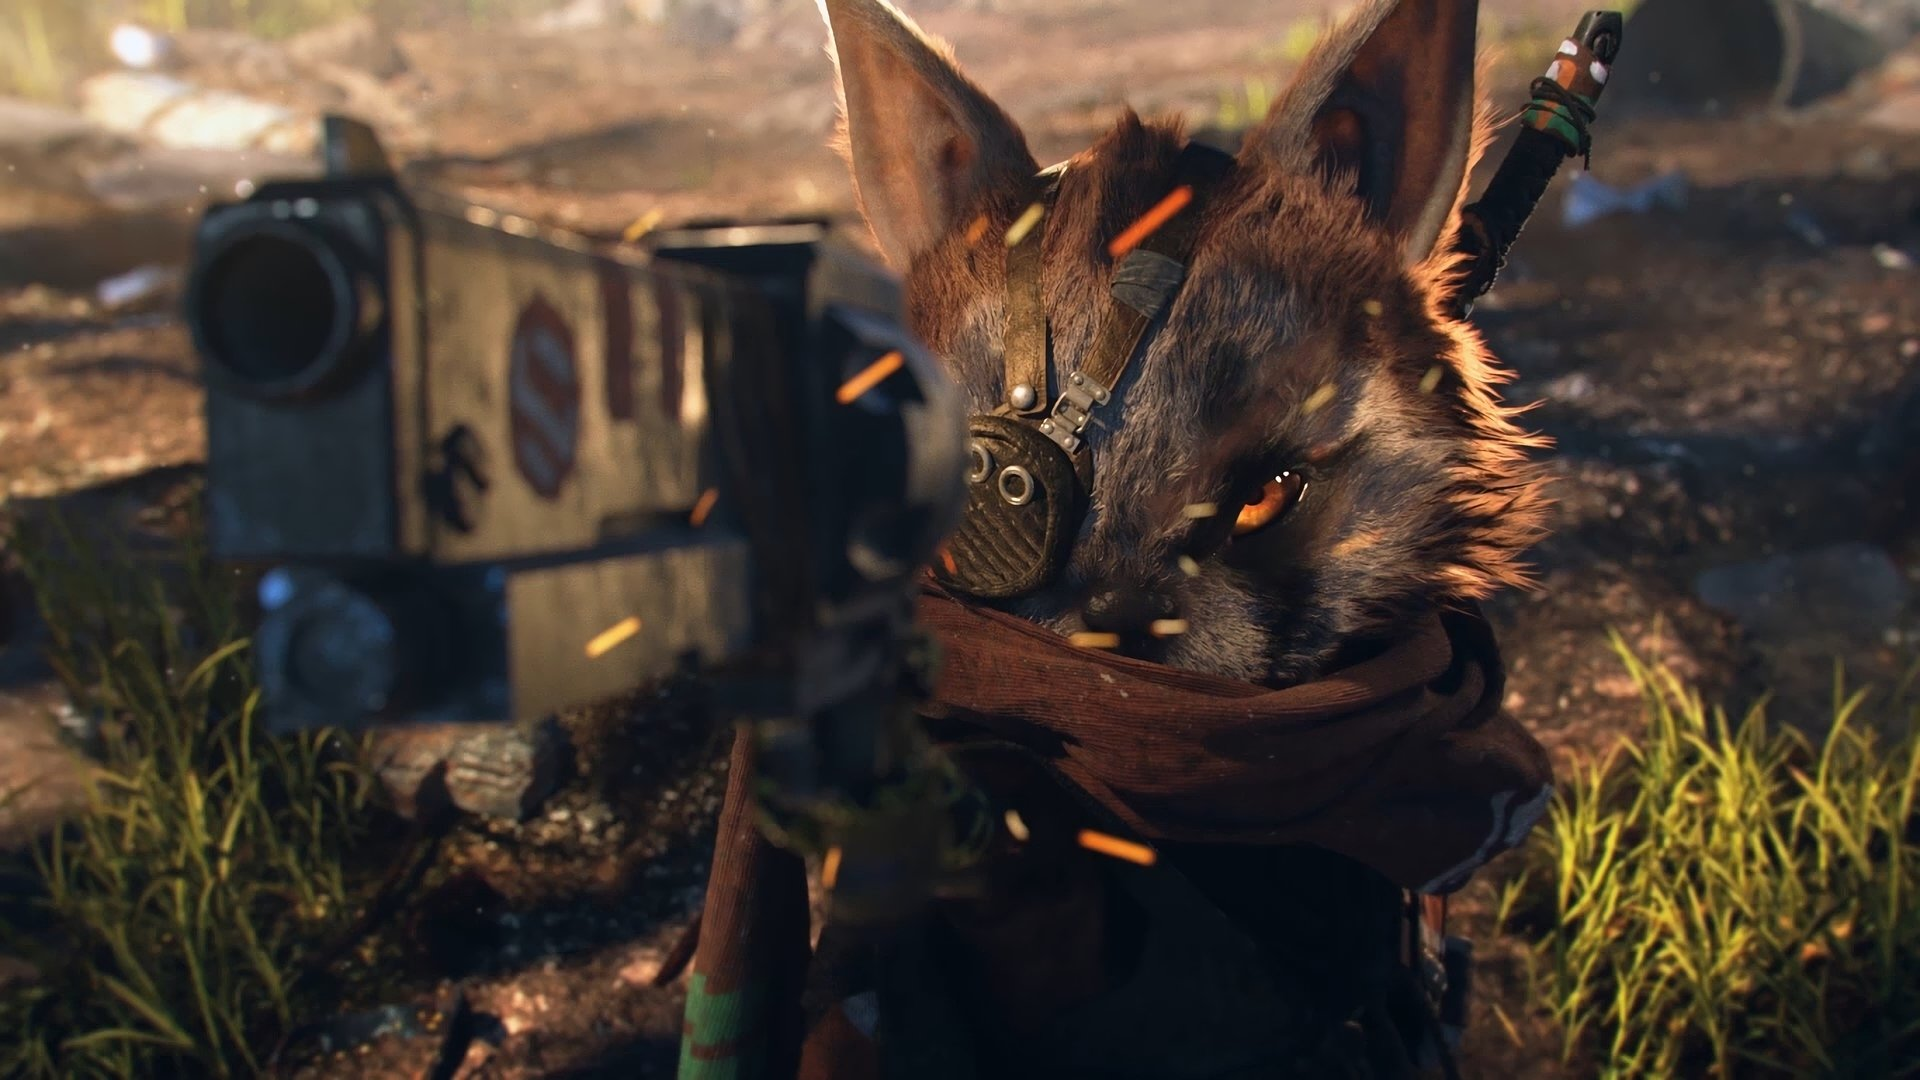 biomutant computer wallpaper 68929